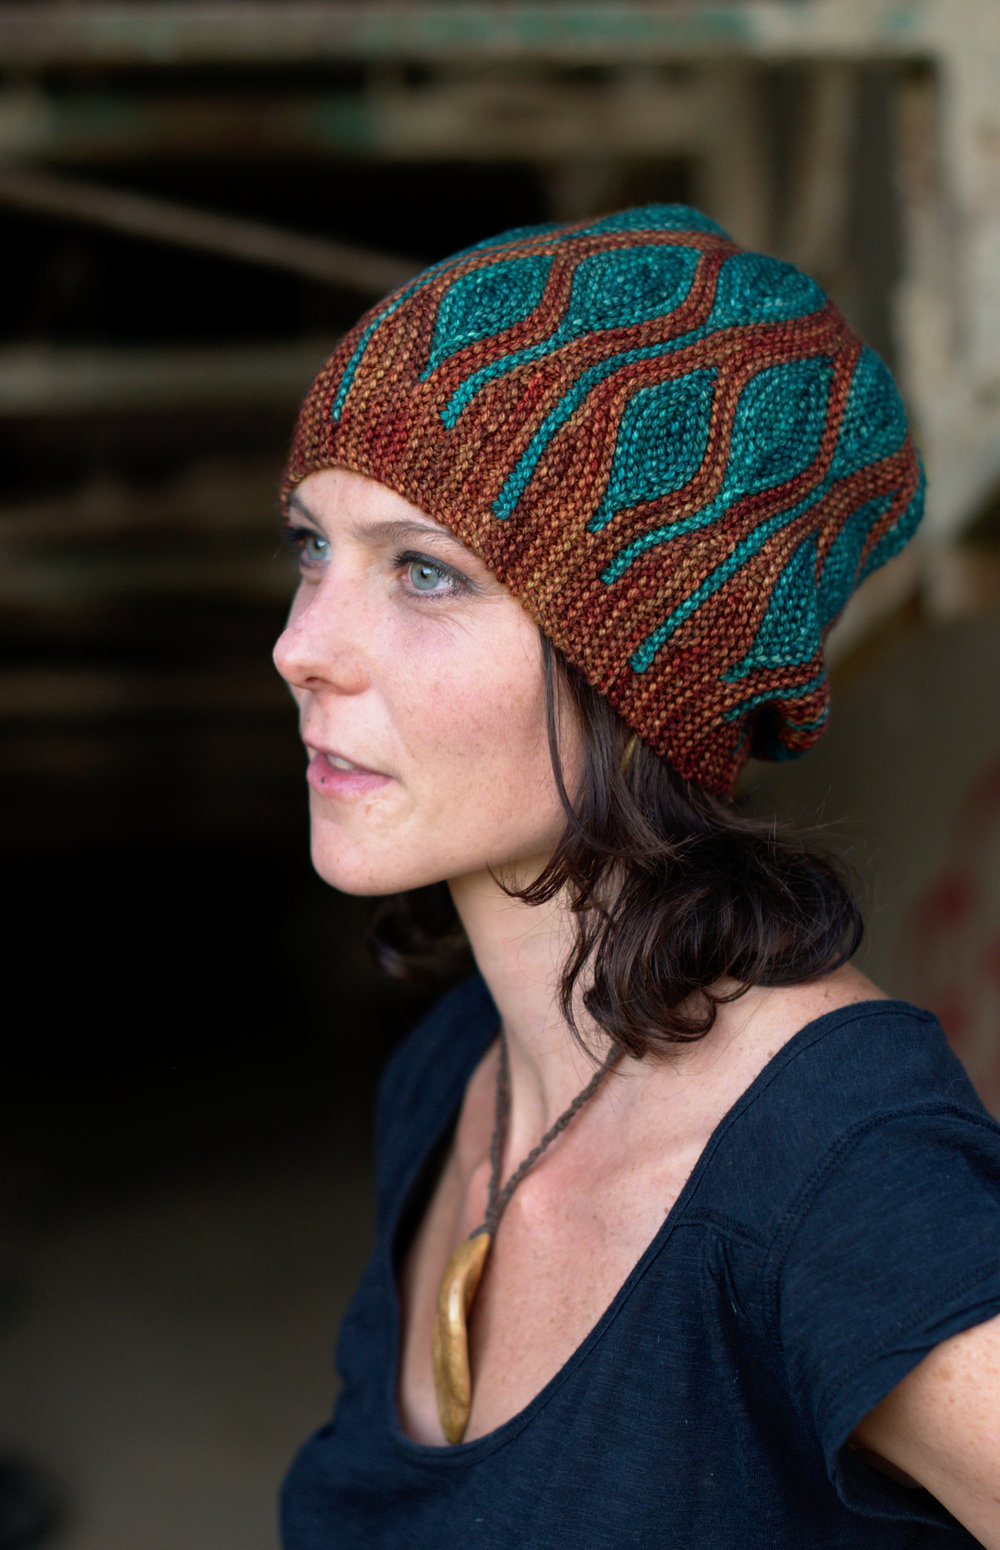 Toph sideways knit short row colourwork Hat knitting pattern